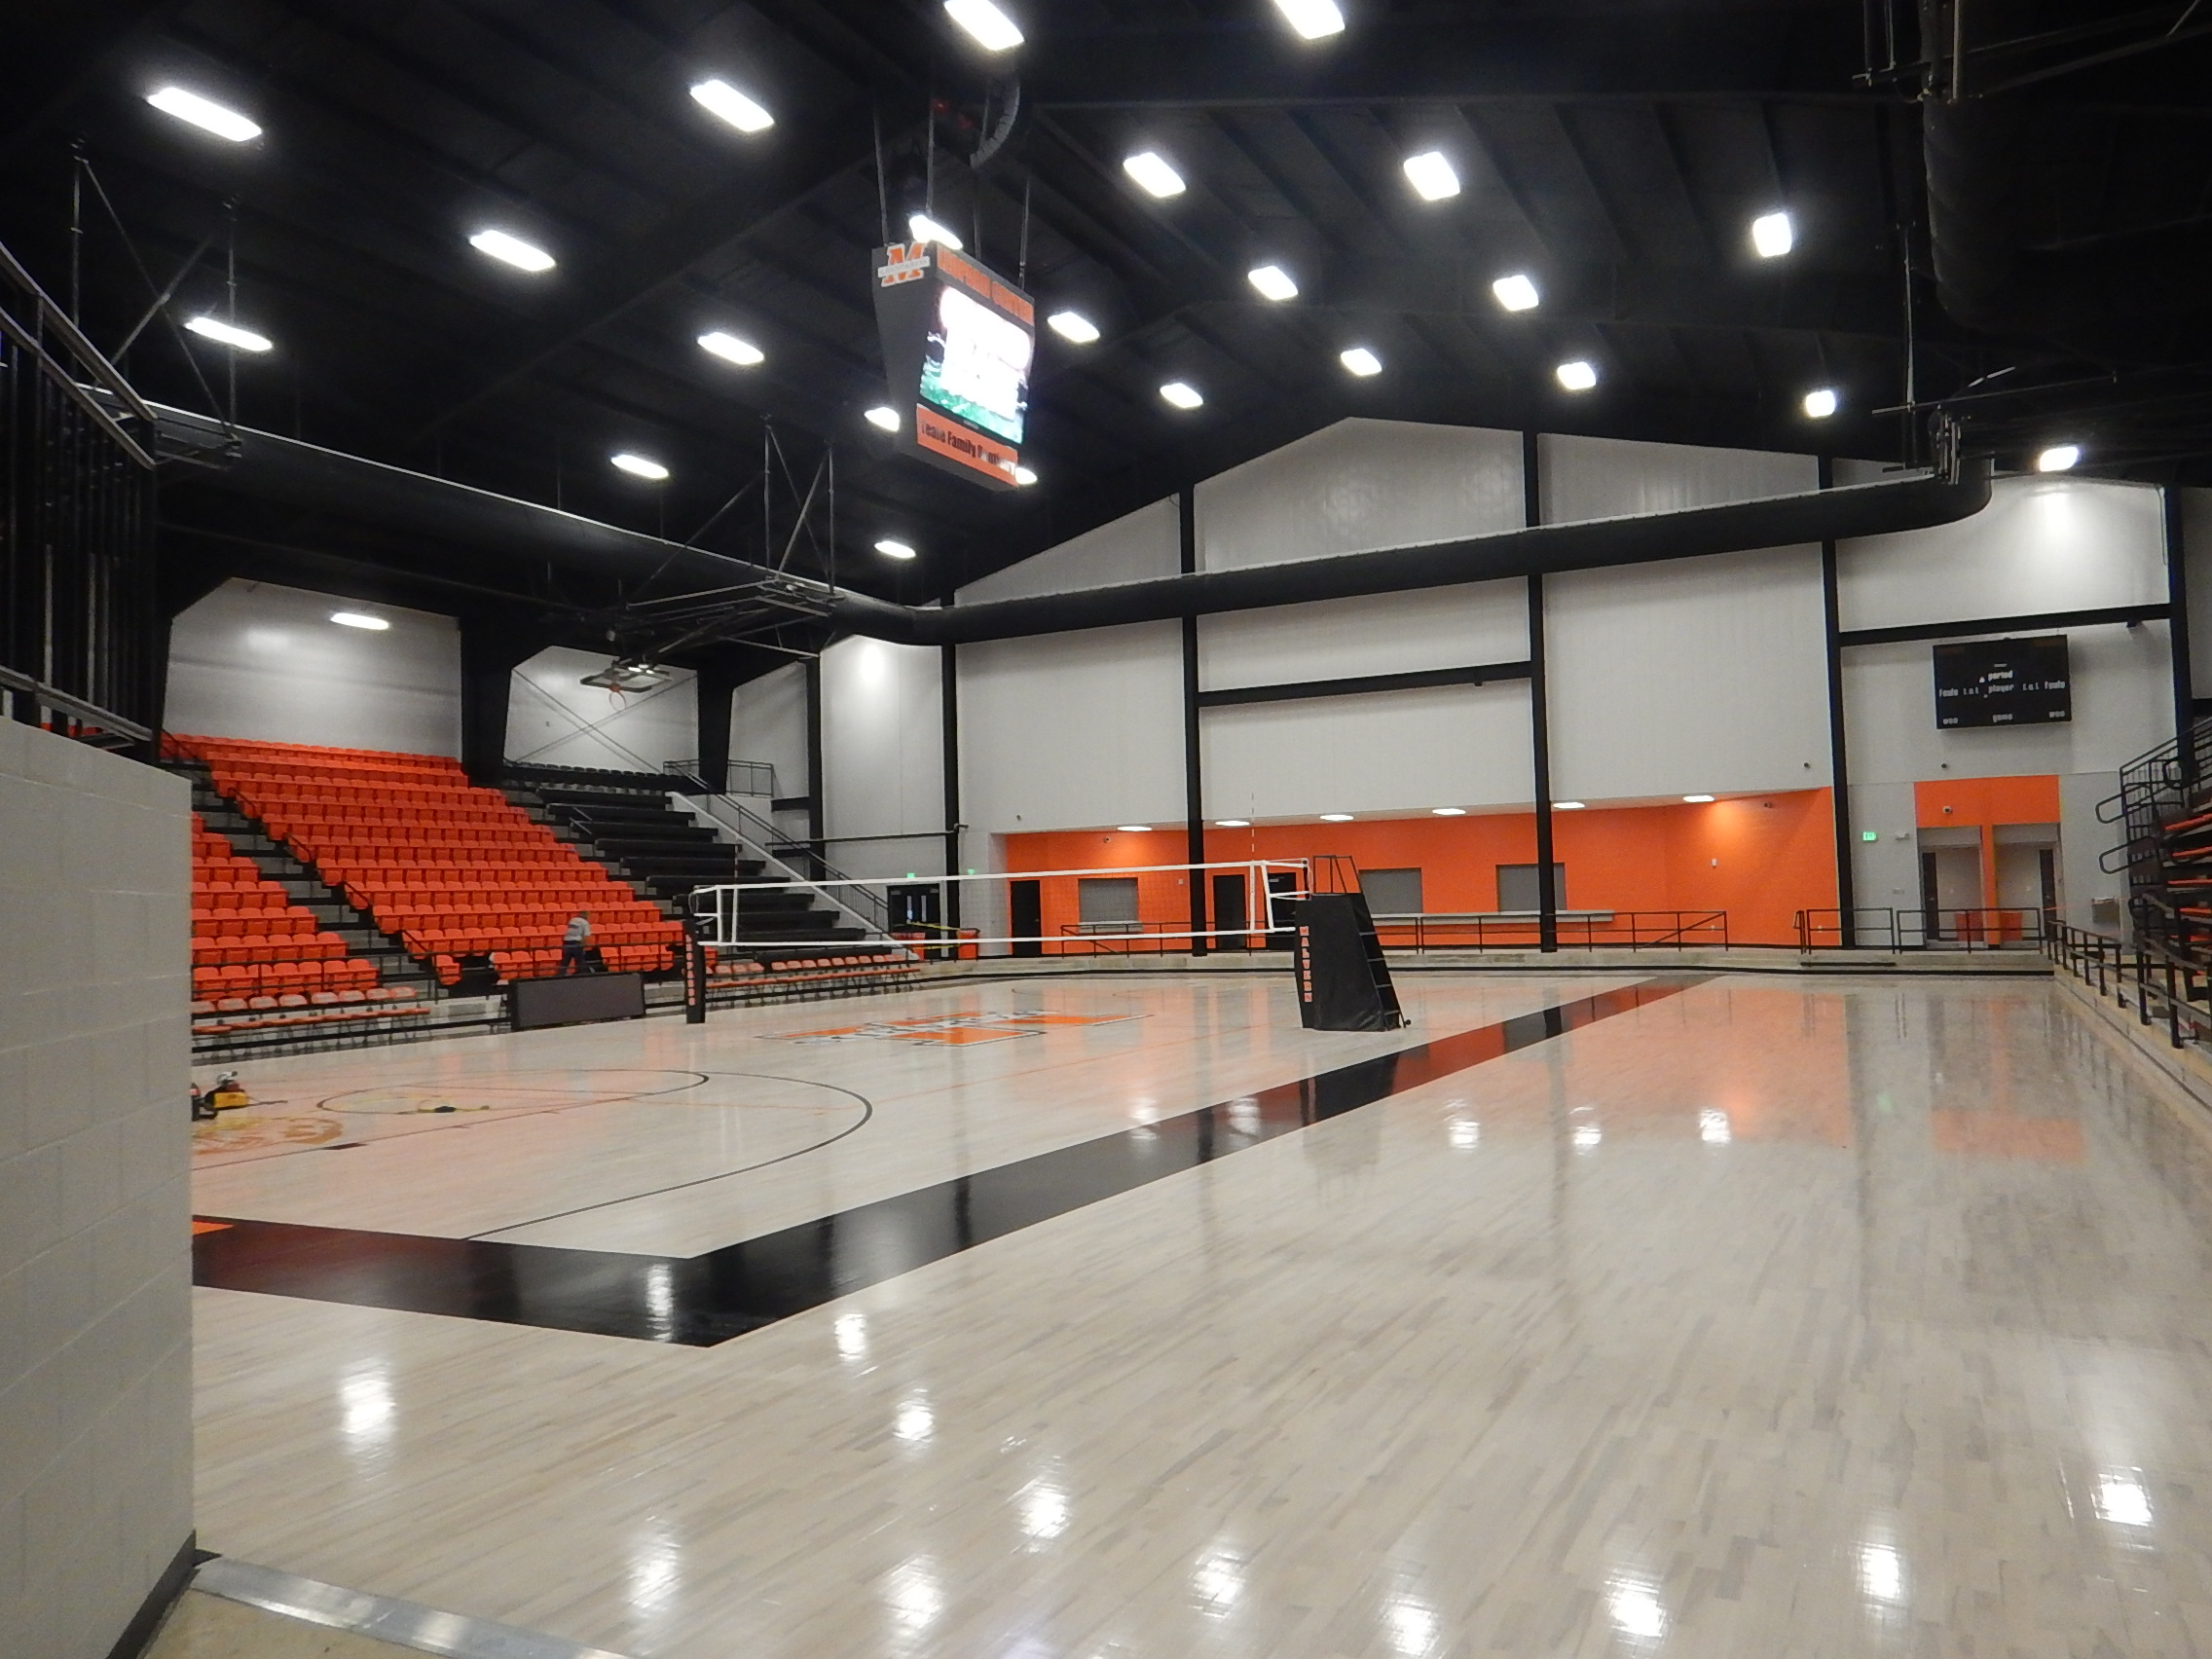 Malvern High School Arena